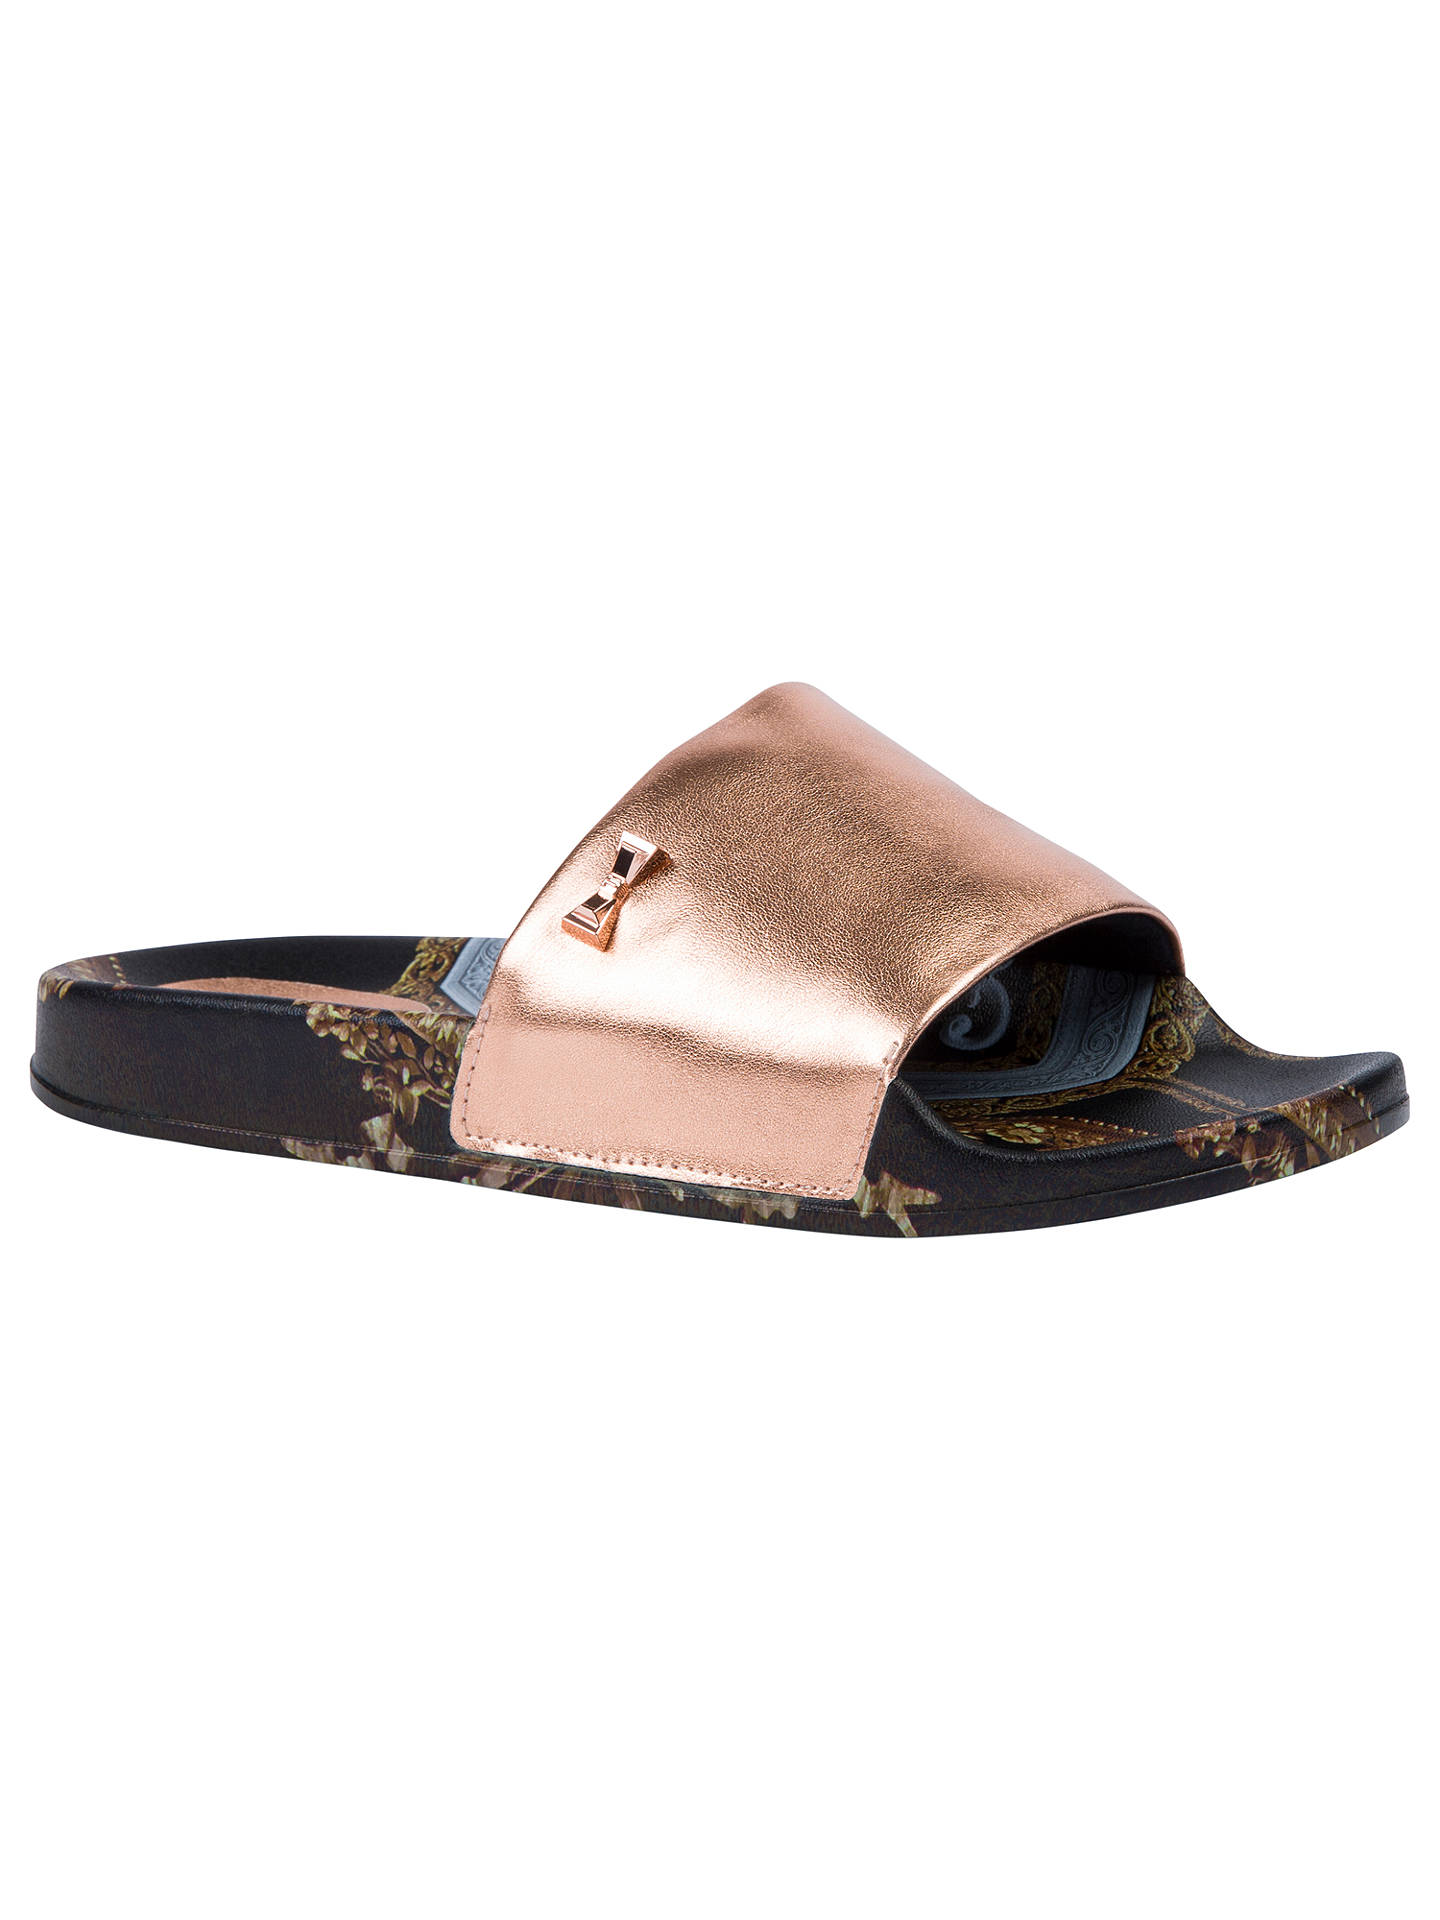 764e0fb53dc60 Buy Ted Baker Aveline Versailles Slider Sandals